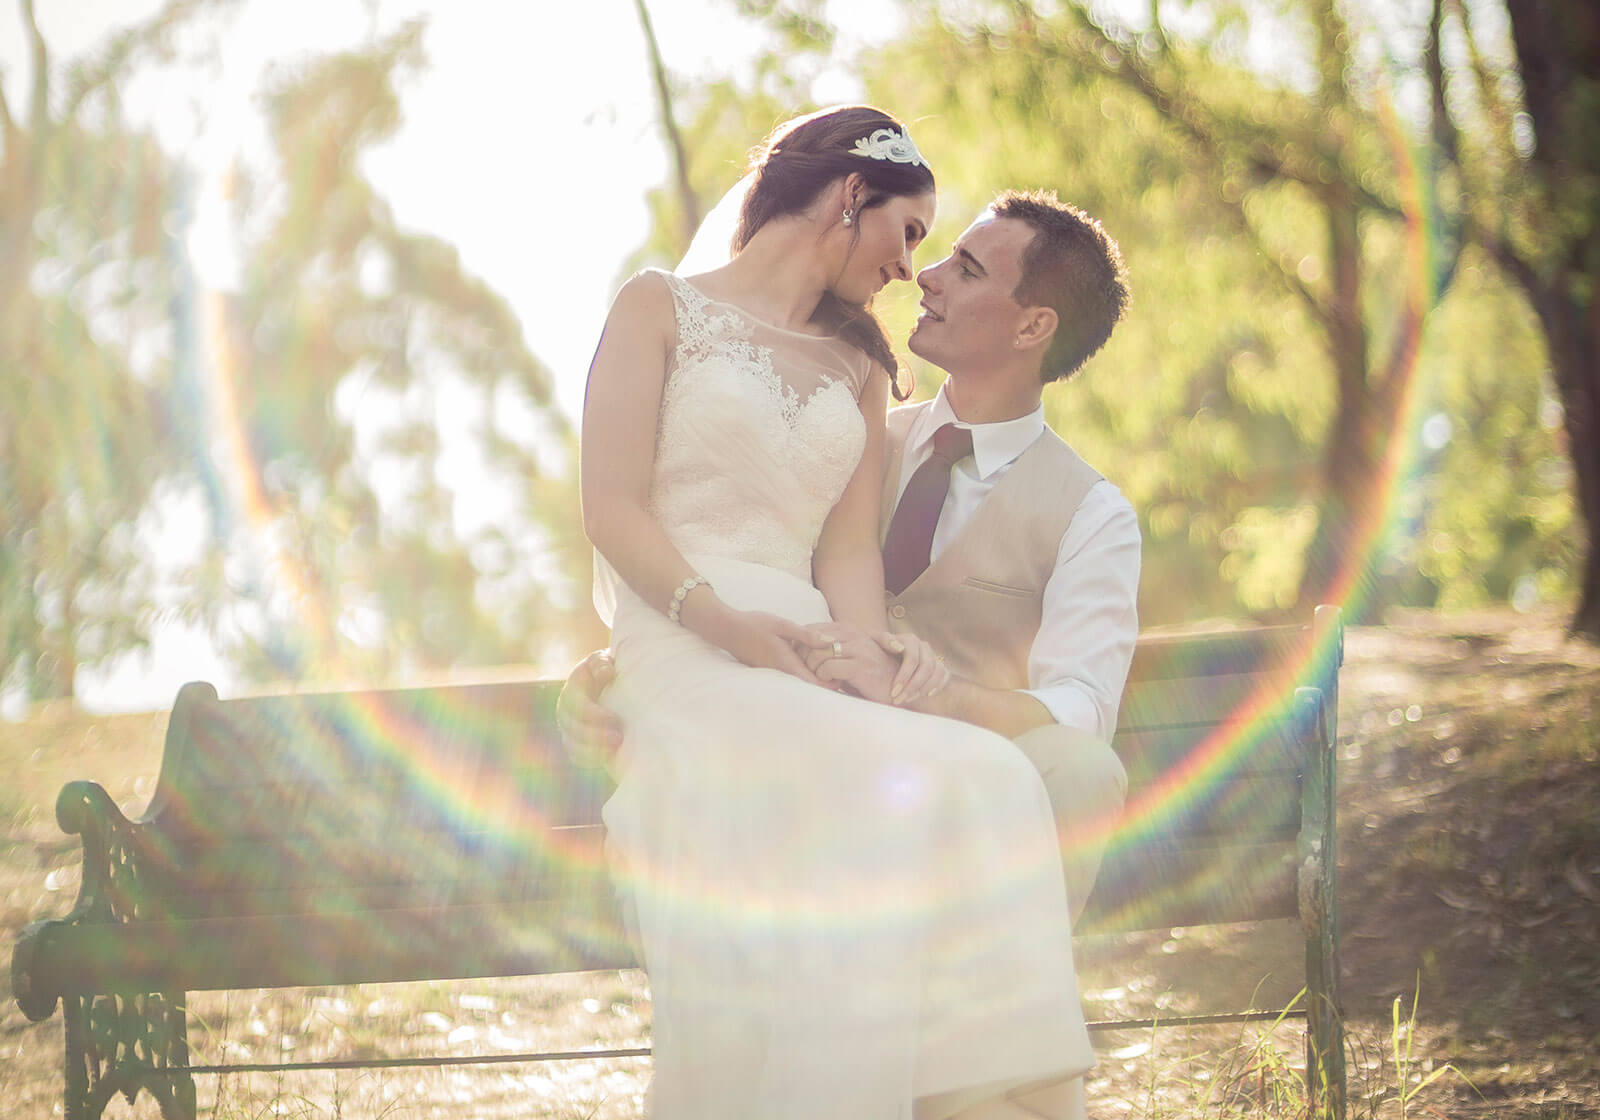 Riverbank, Pinjarra Wedding Photography by Peter Adams-Shawn